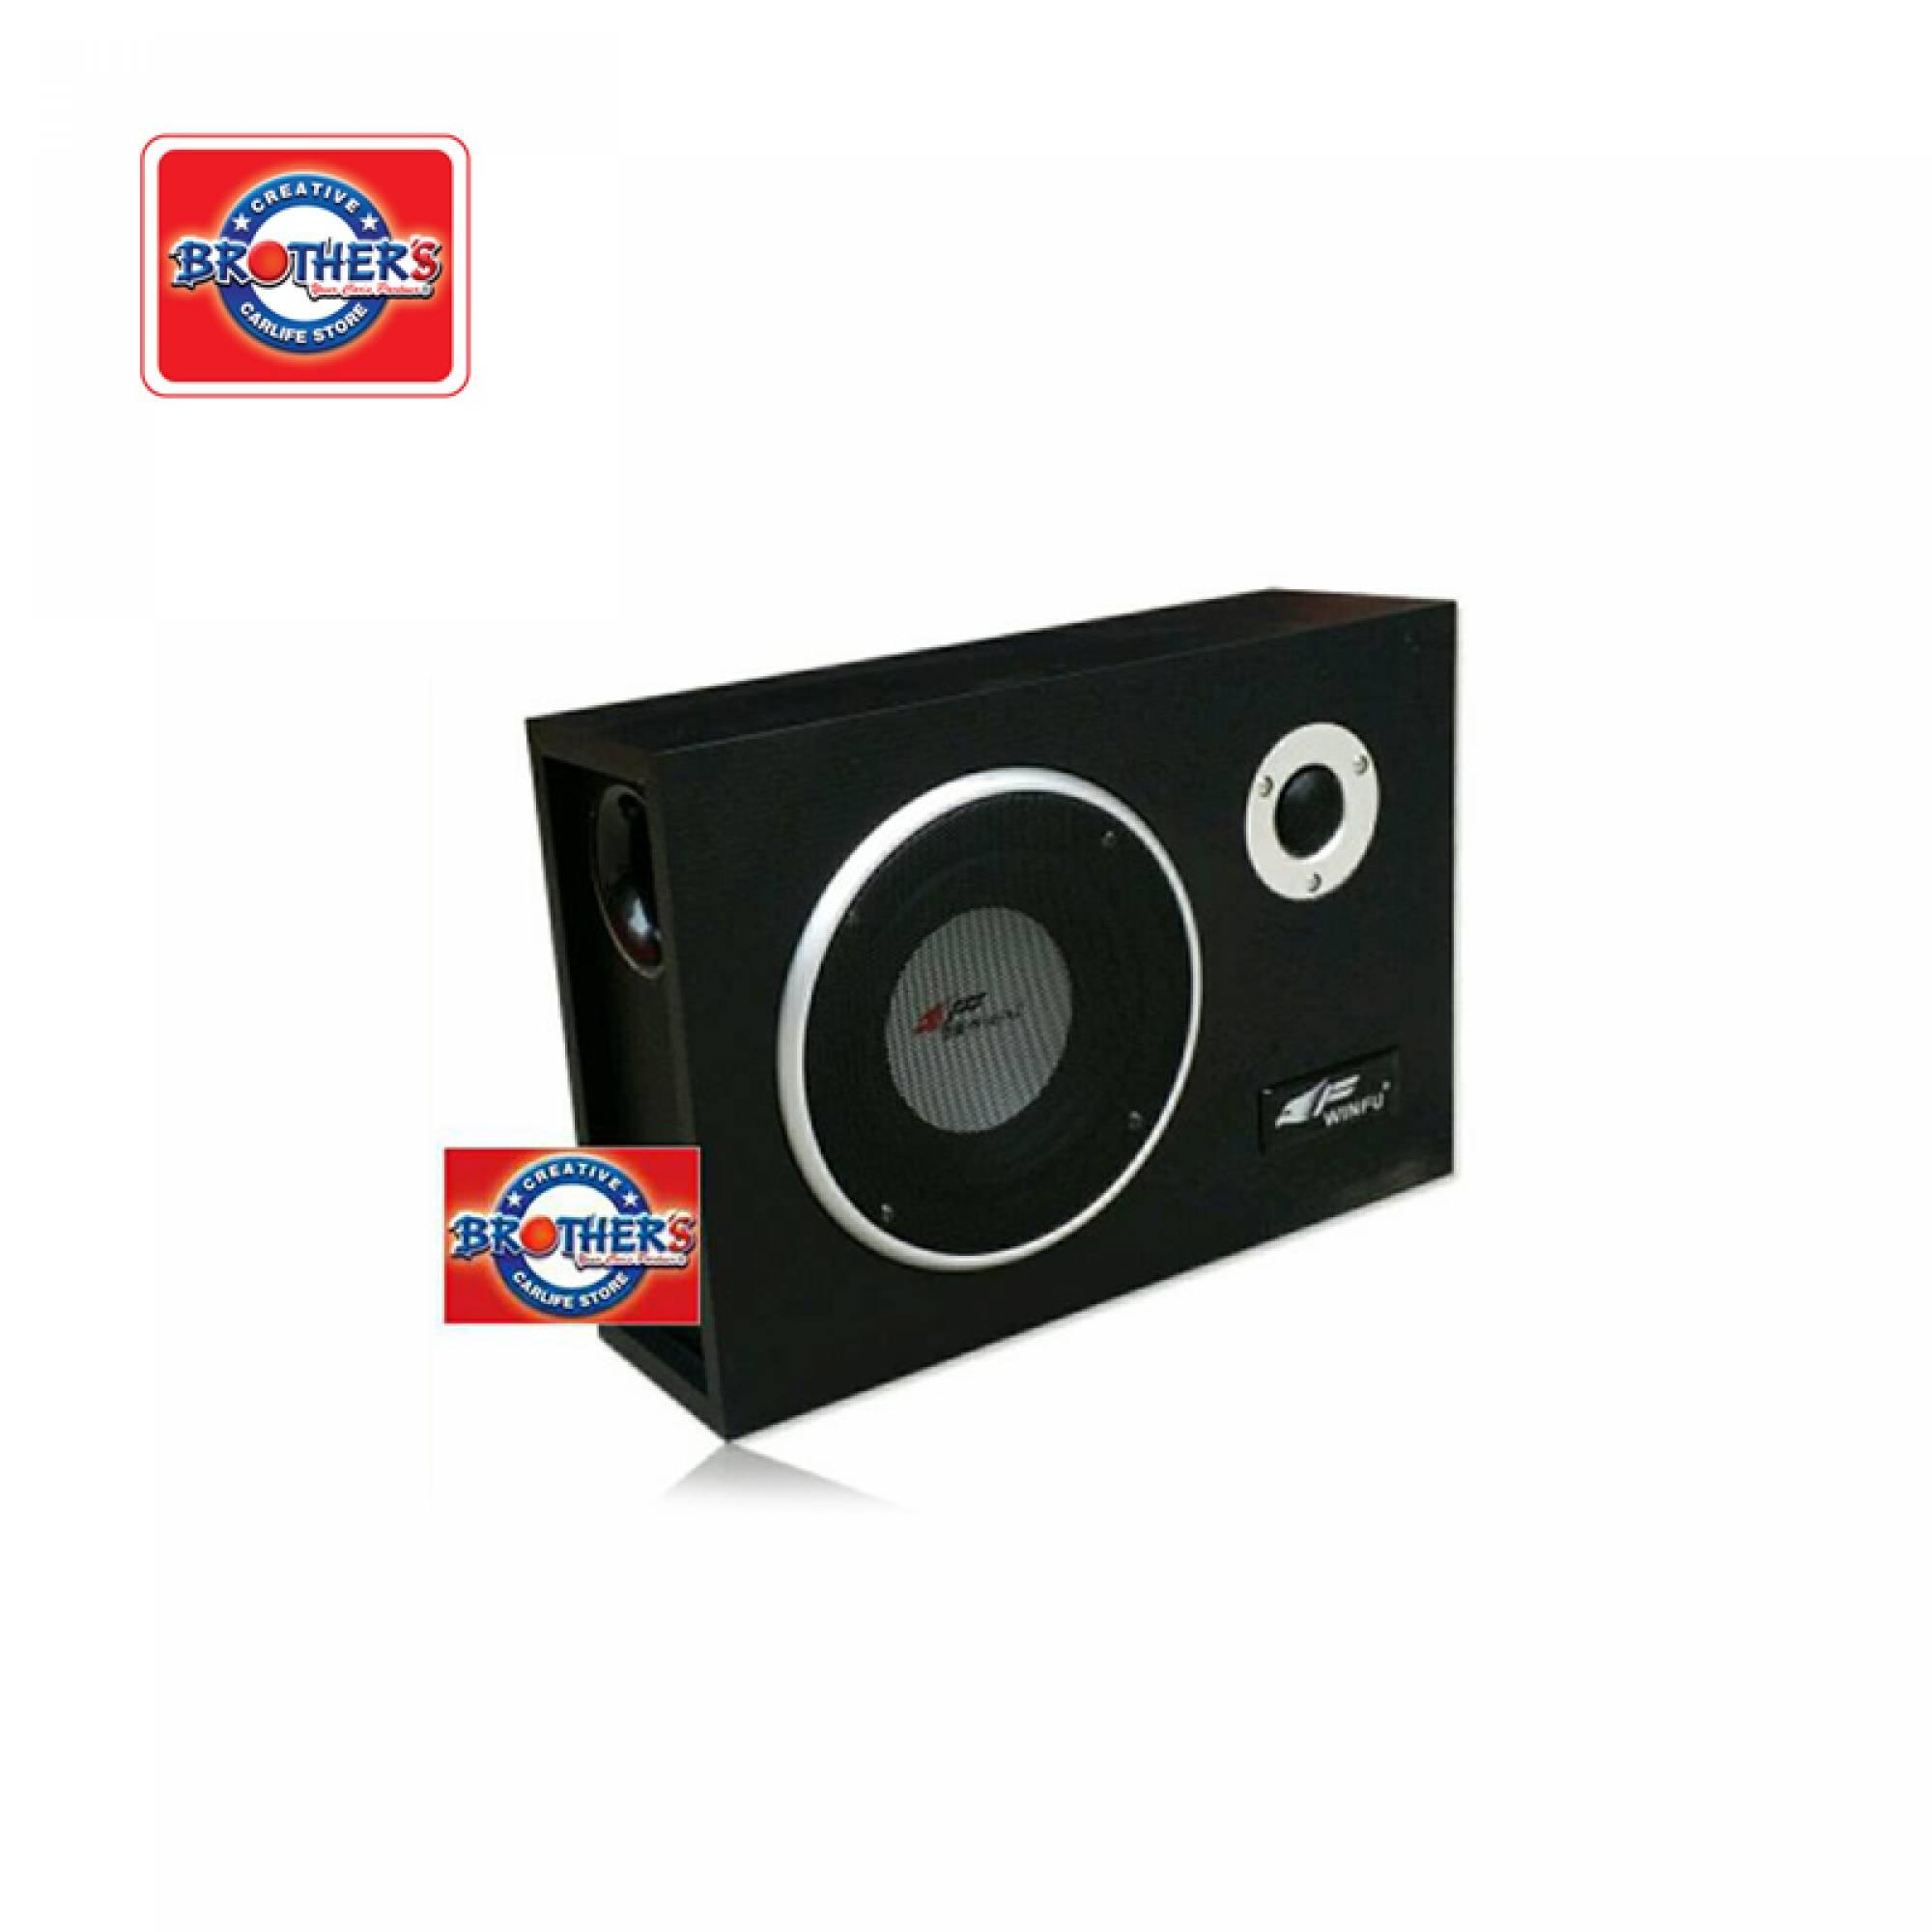 Winfu F600 Subwoofer With Amplifier Brothers Factory Outlet M Post Laju